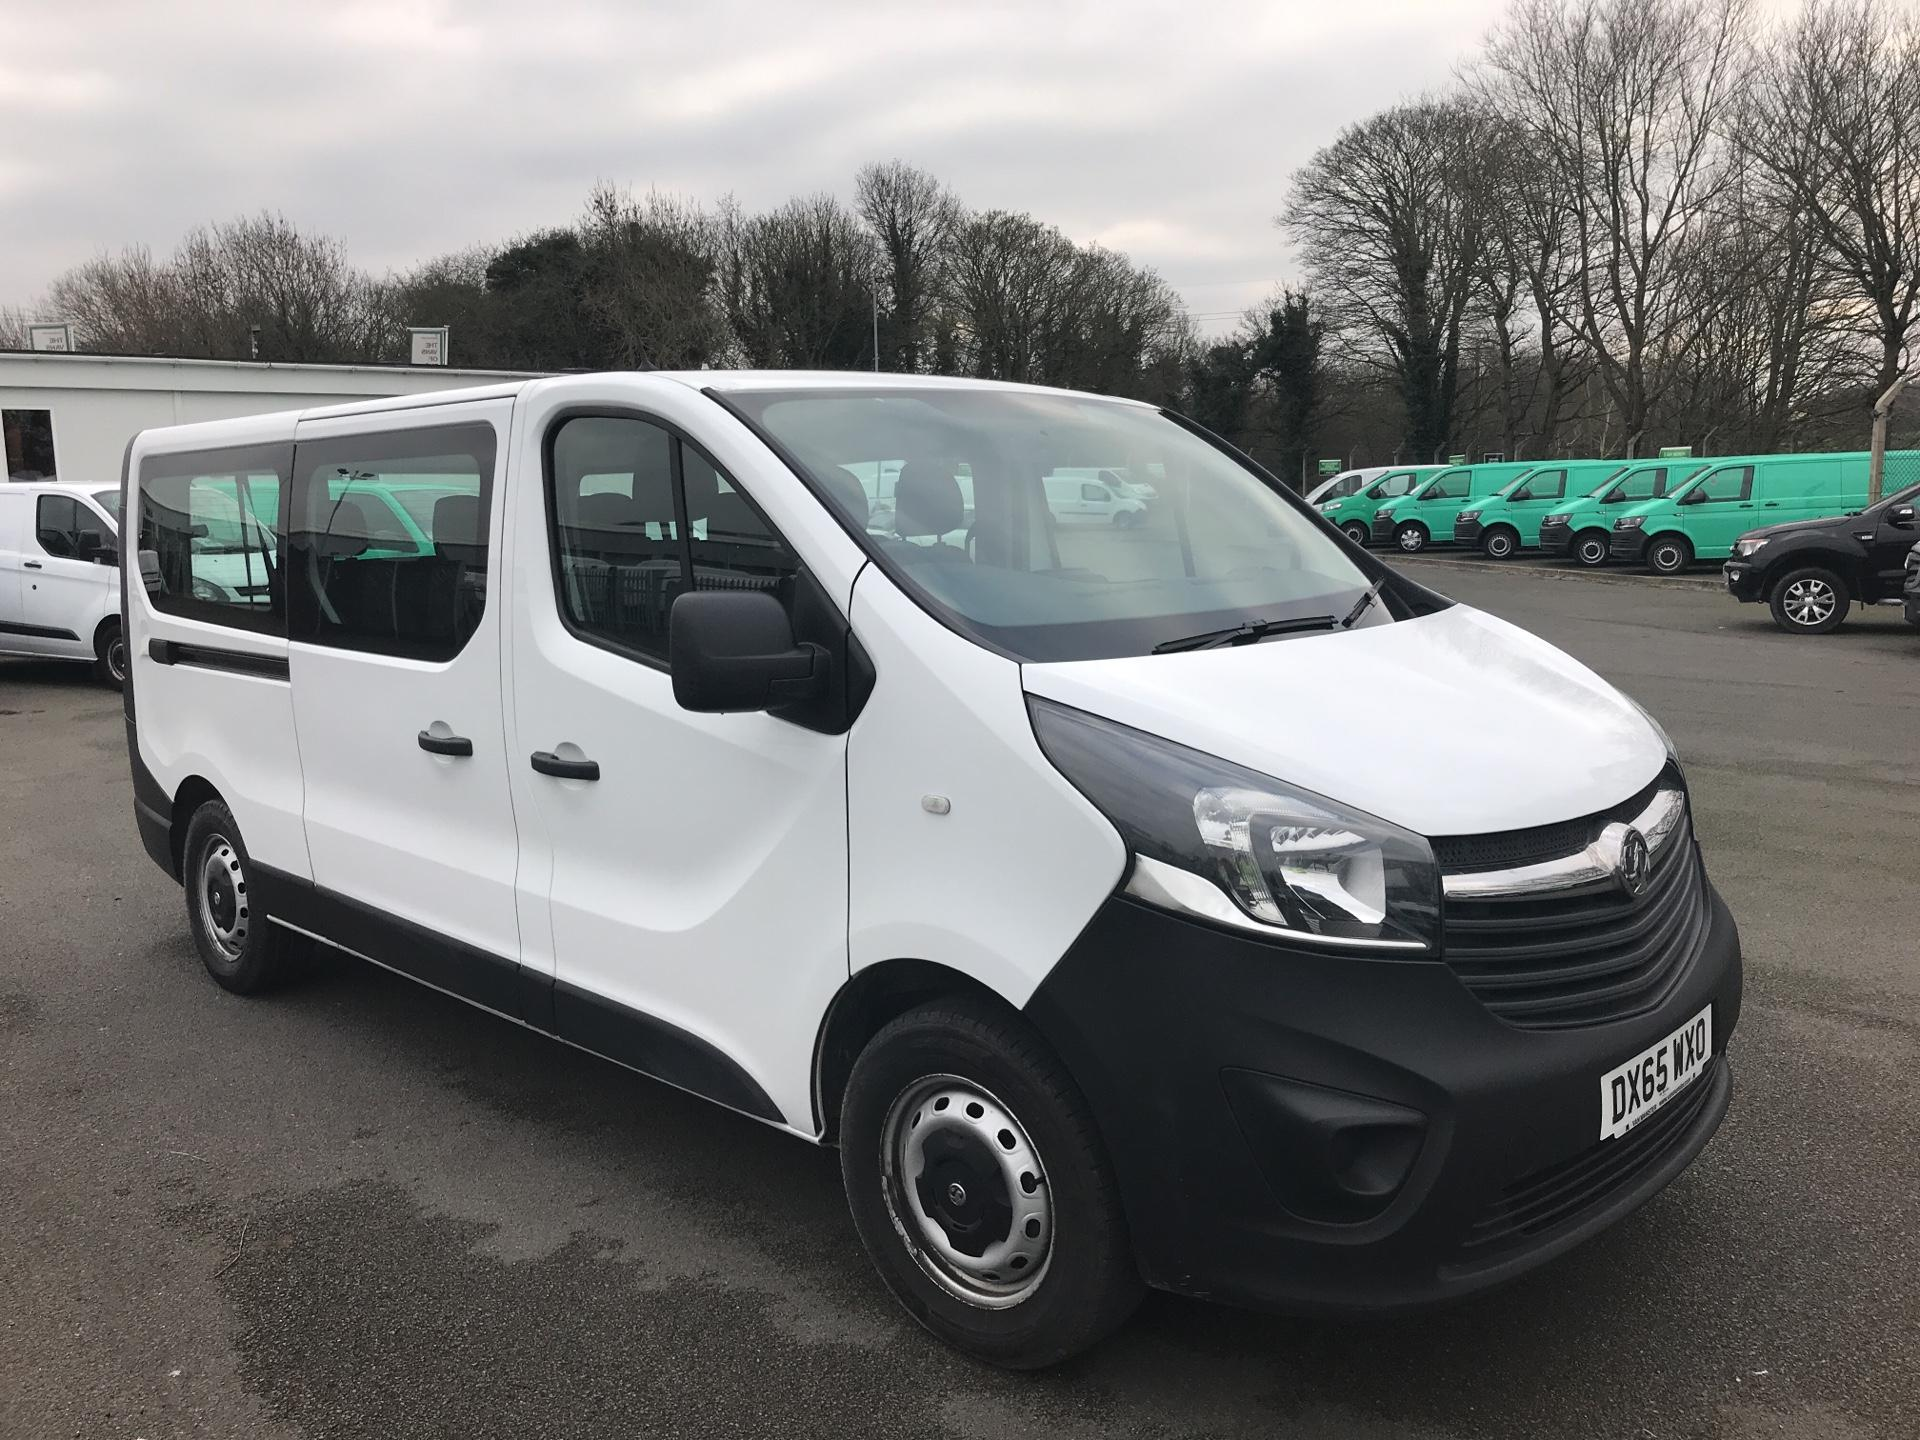 2015 Vauxhall Vivaro  L2 H1 2900 1.6 115PS COMBI 9 SEAT EURO 5 *VALUE RANGE VEHICLE - CONDITION REFLECTED IN PRICE* (DX65WXO)